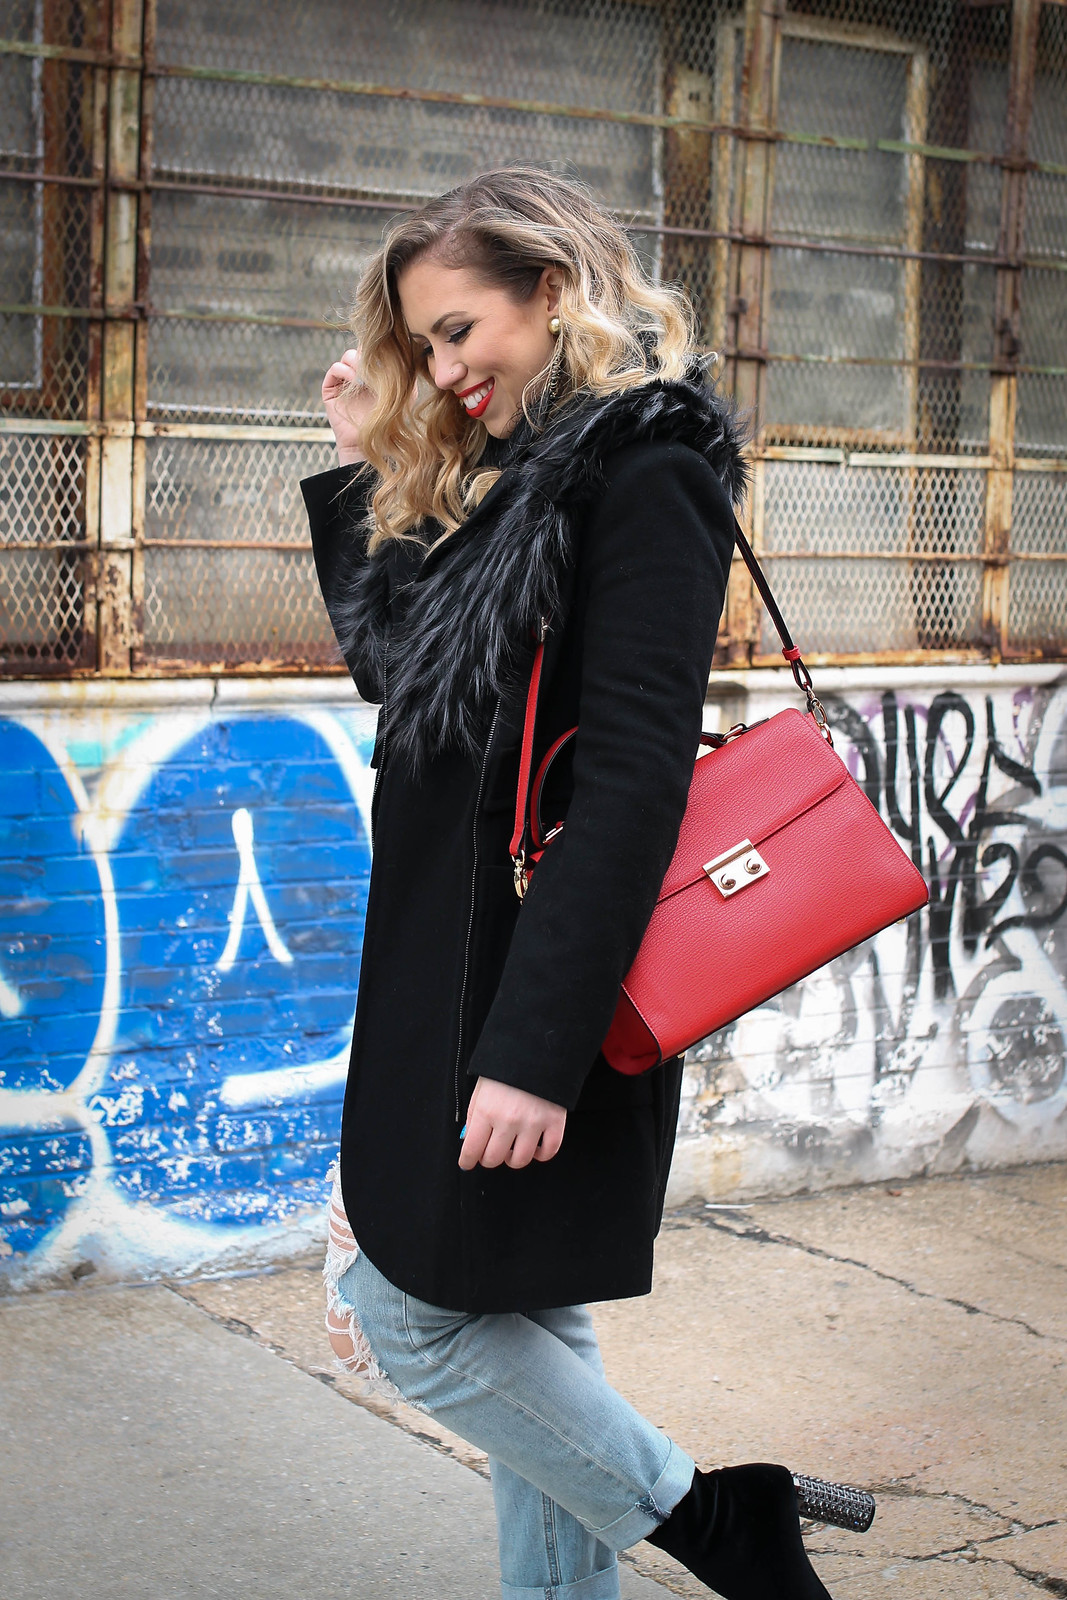 Winter NY Style Black Faux Fur Trim Coat Old Navy Distressed Boyfriend Jeans Red Bag Living After Midnite Jackie Giardina